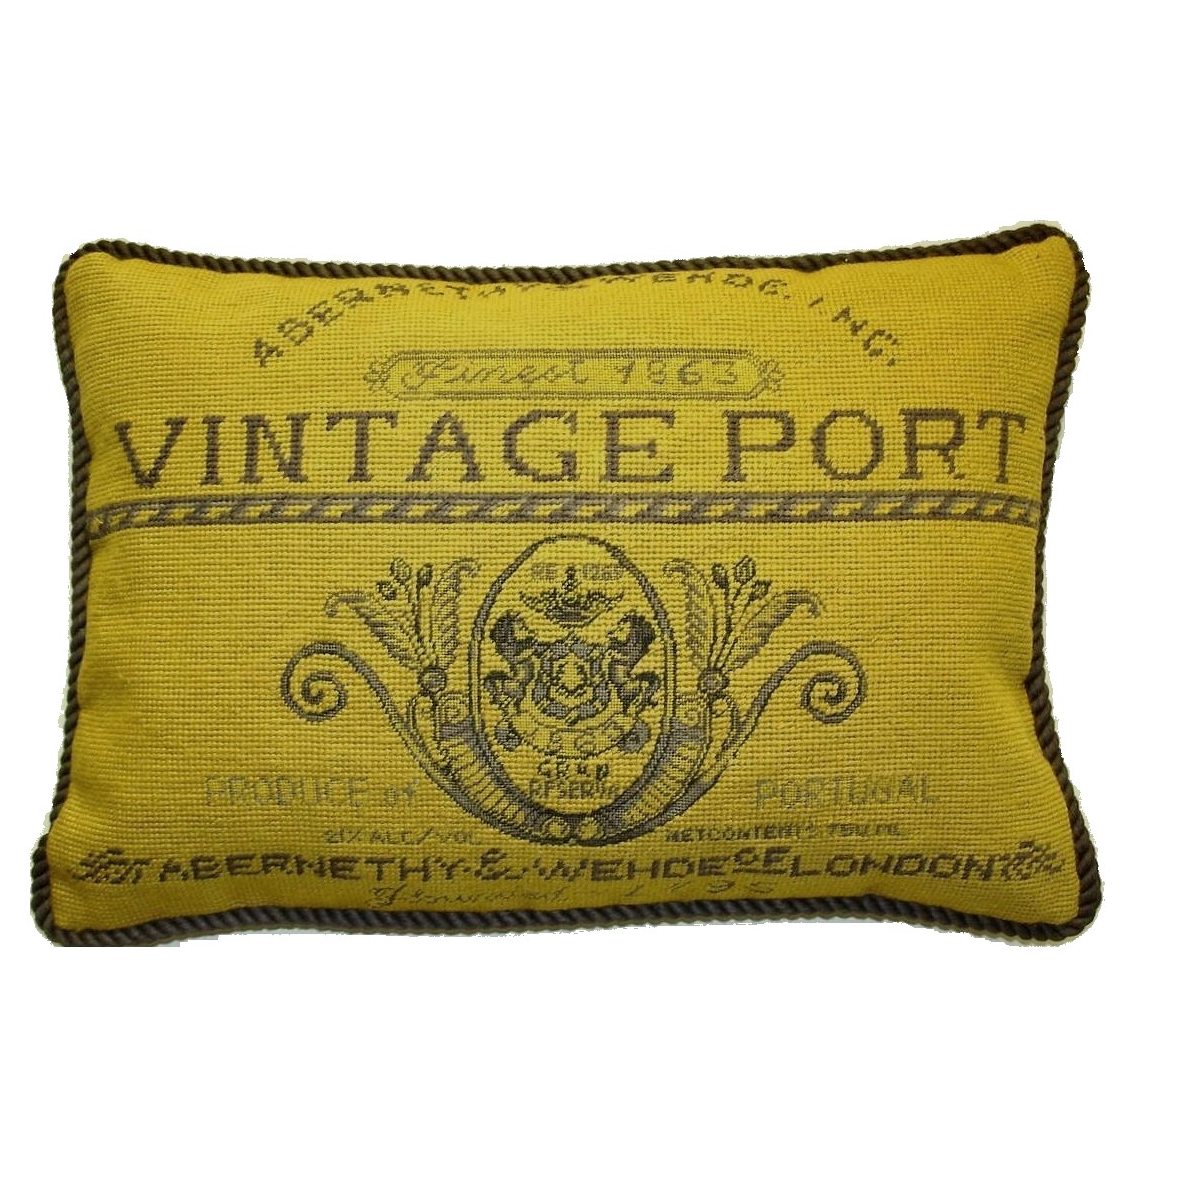 Abernethy & Wehde label Pillow